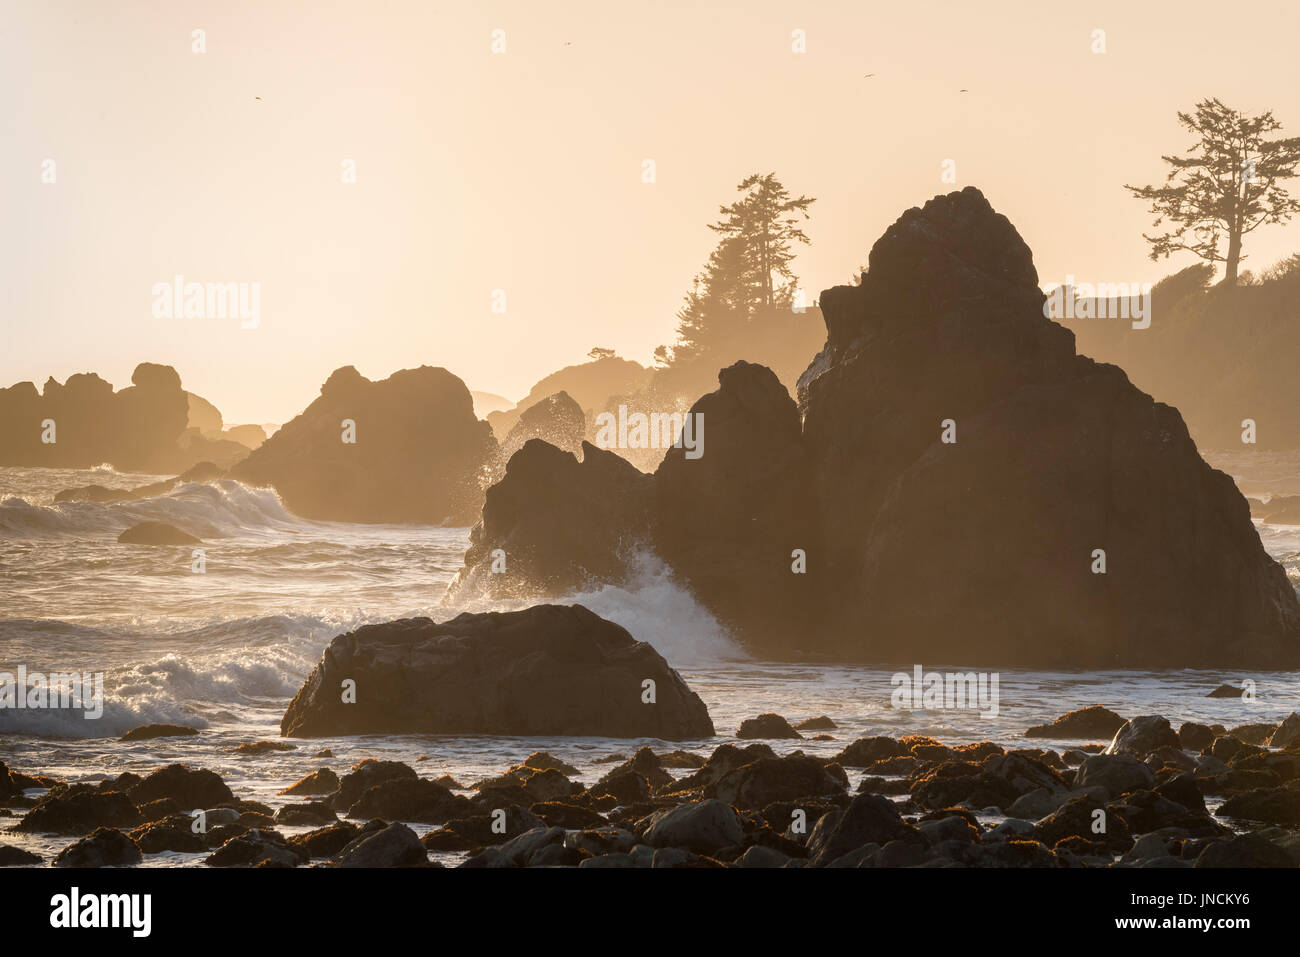 Surf and rocks at Pebble Beach, Crescent City, California. - Stock Image